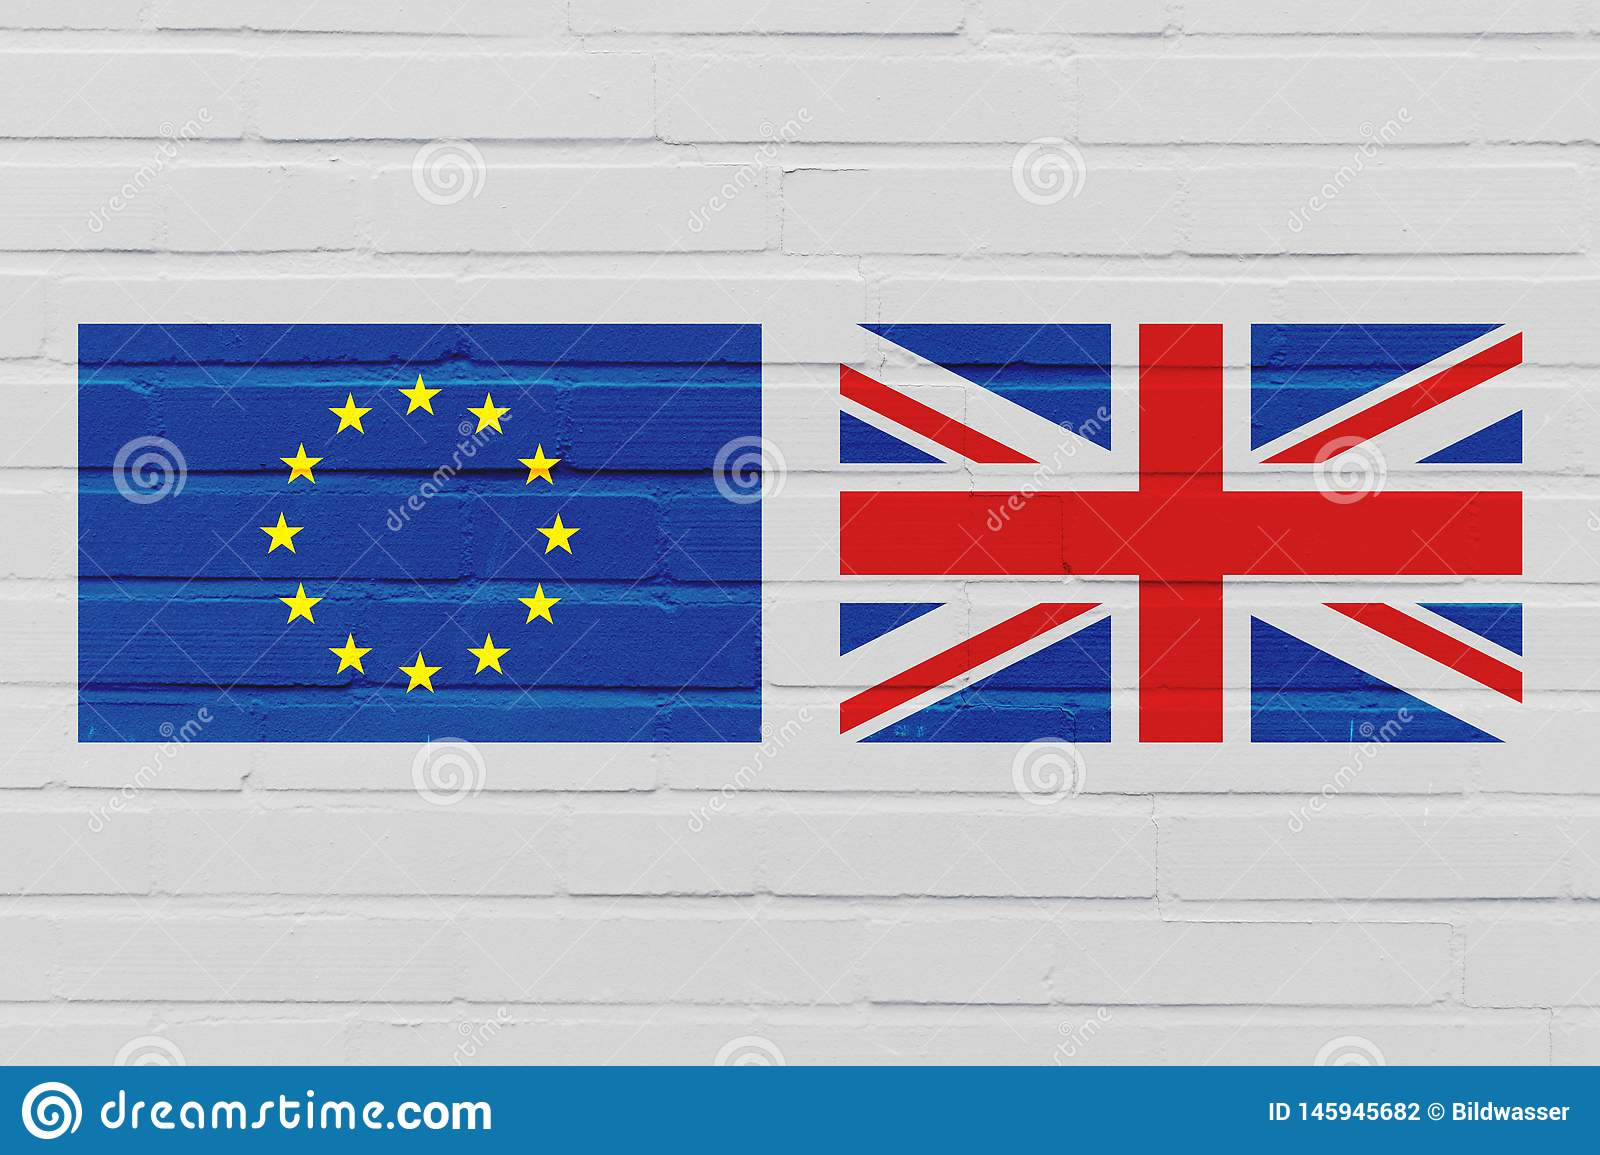 Brexit Concept with the Flag of European Union and United Kingdom on Brick Wall